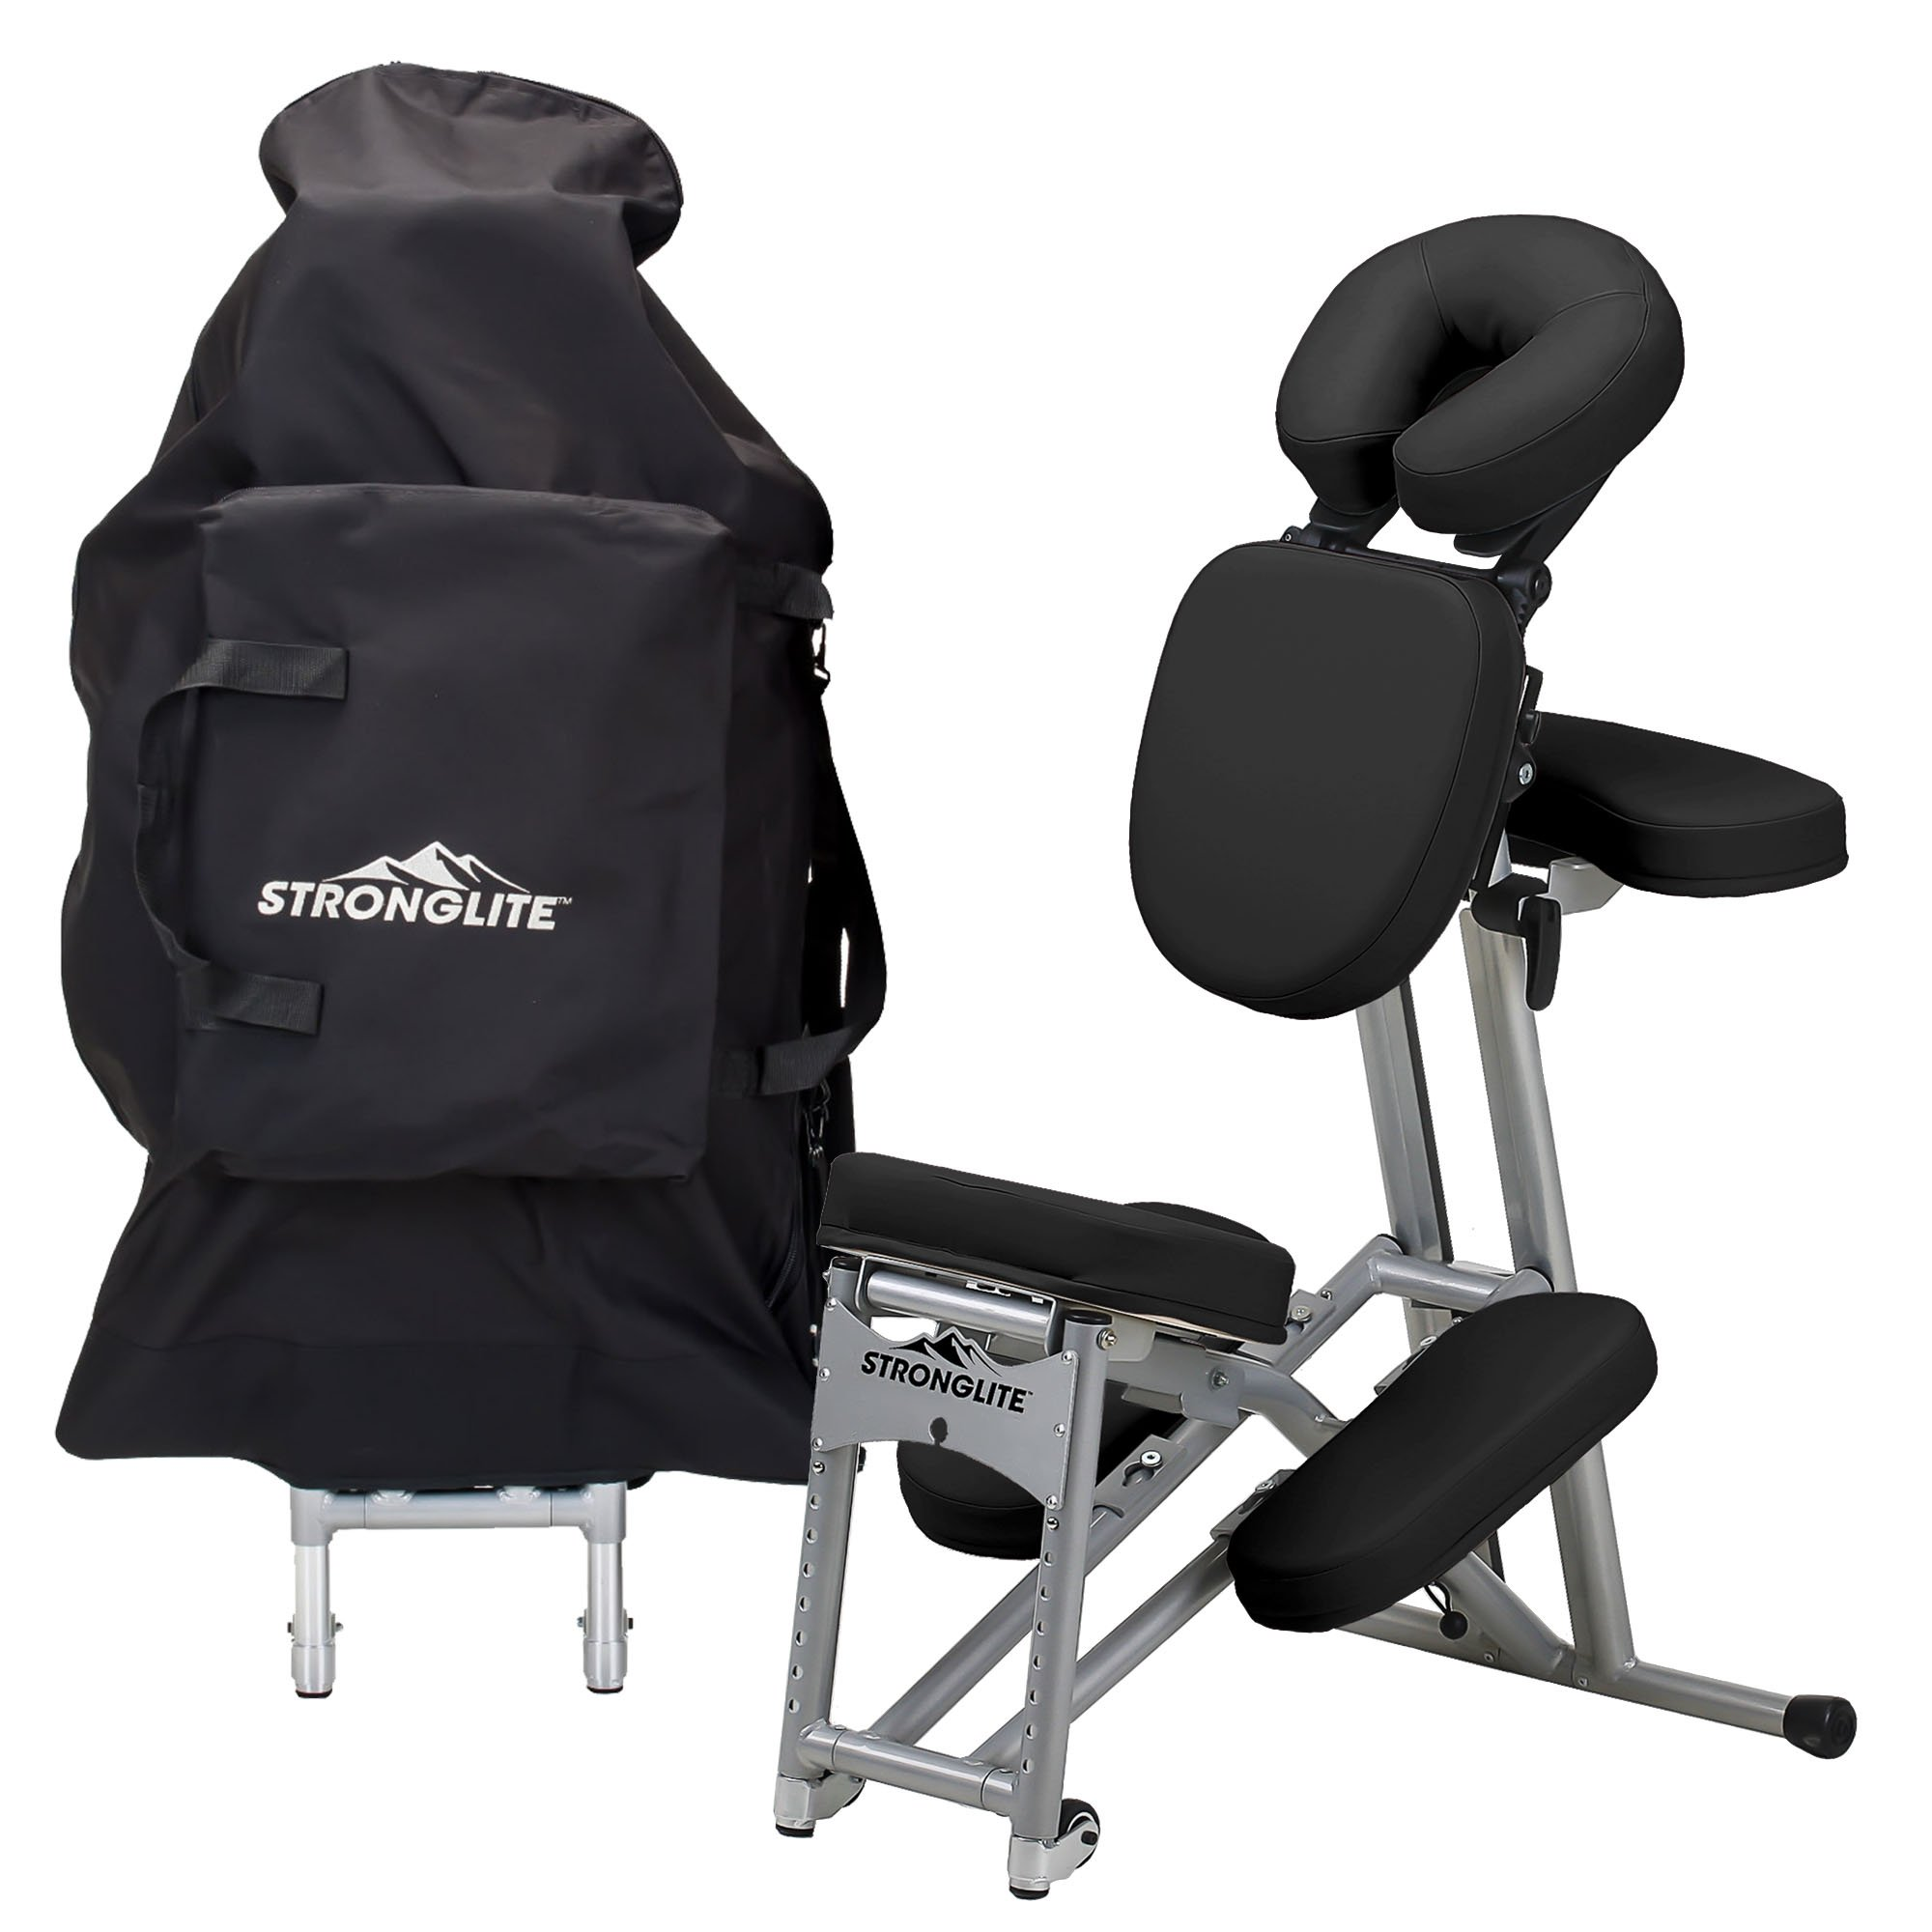 STRONGLITE Ergo Pro II Portable Massage Chair Package   Lightweight,  Foldable Tattoo Spa Massage Chair With Wheels